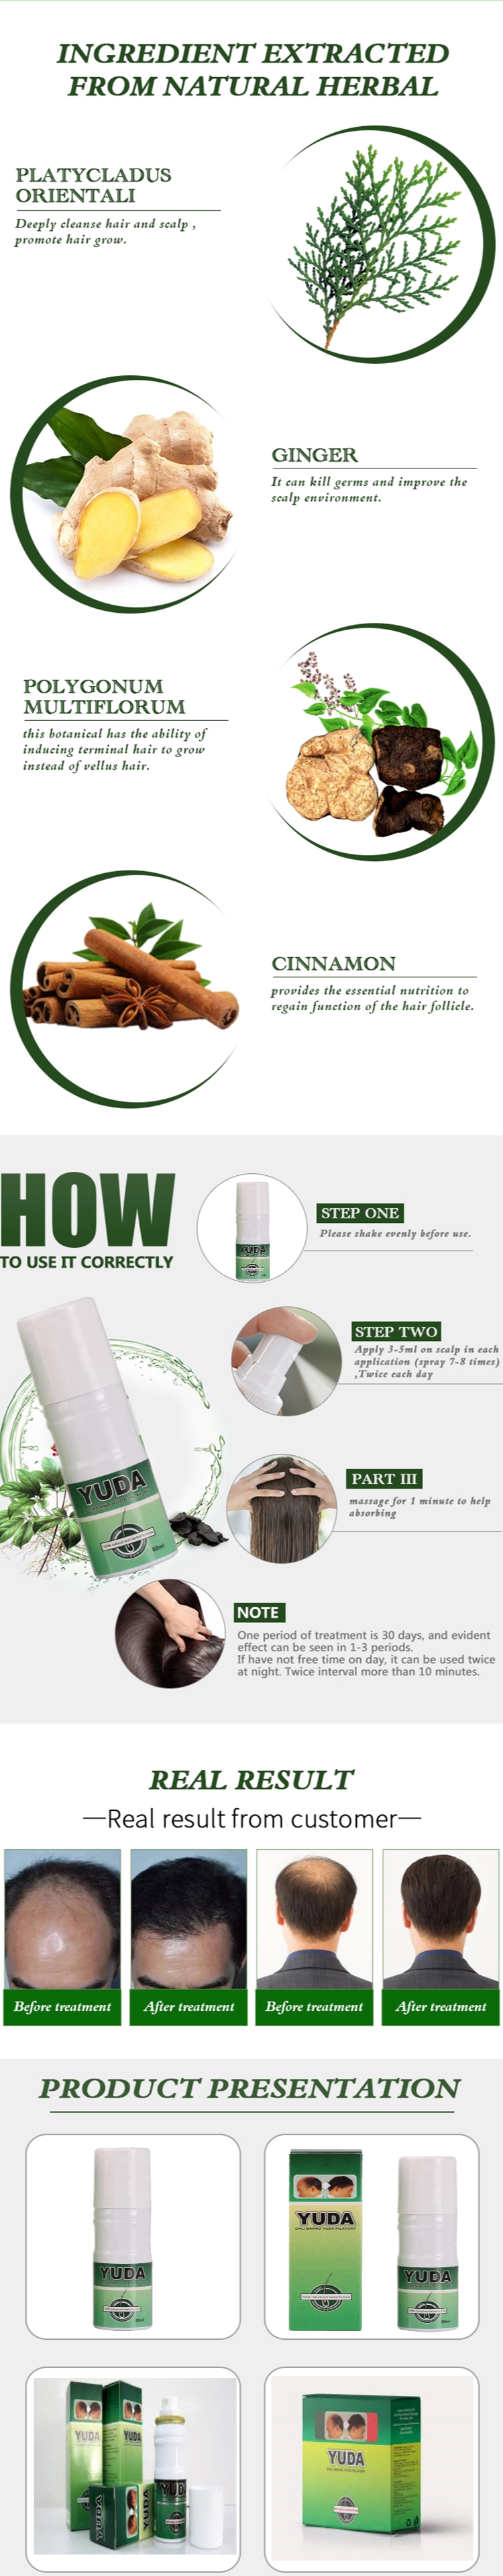 Ginseng hair growth system serum korea